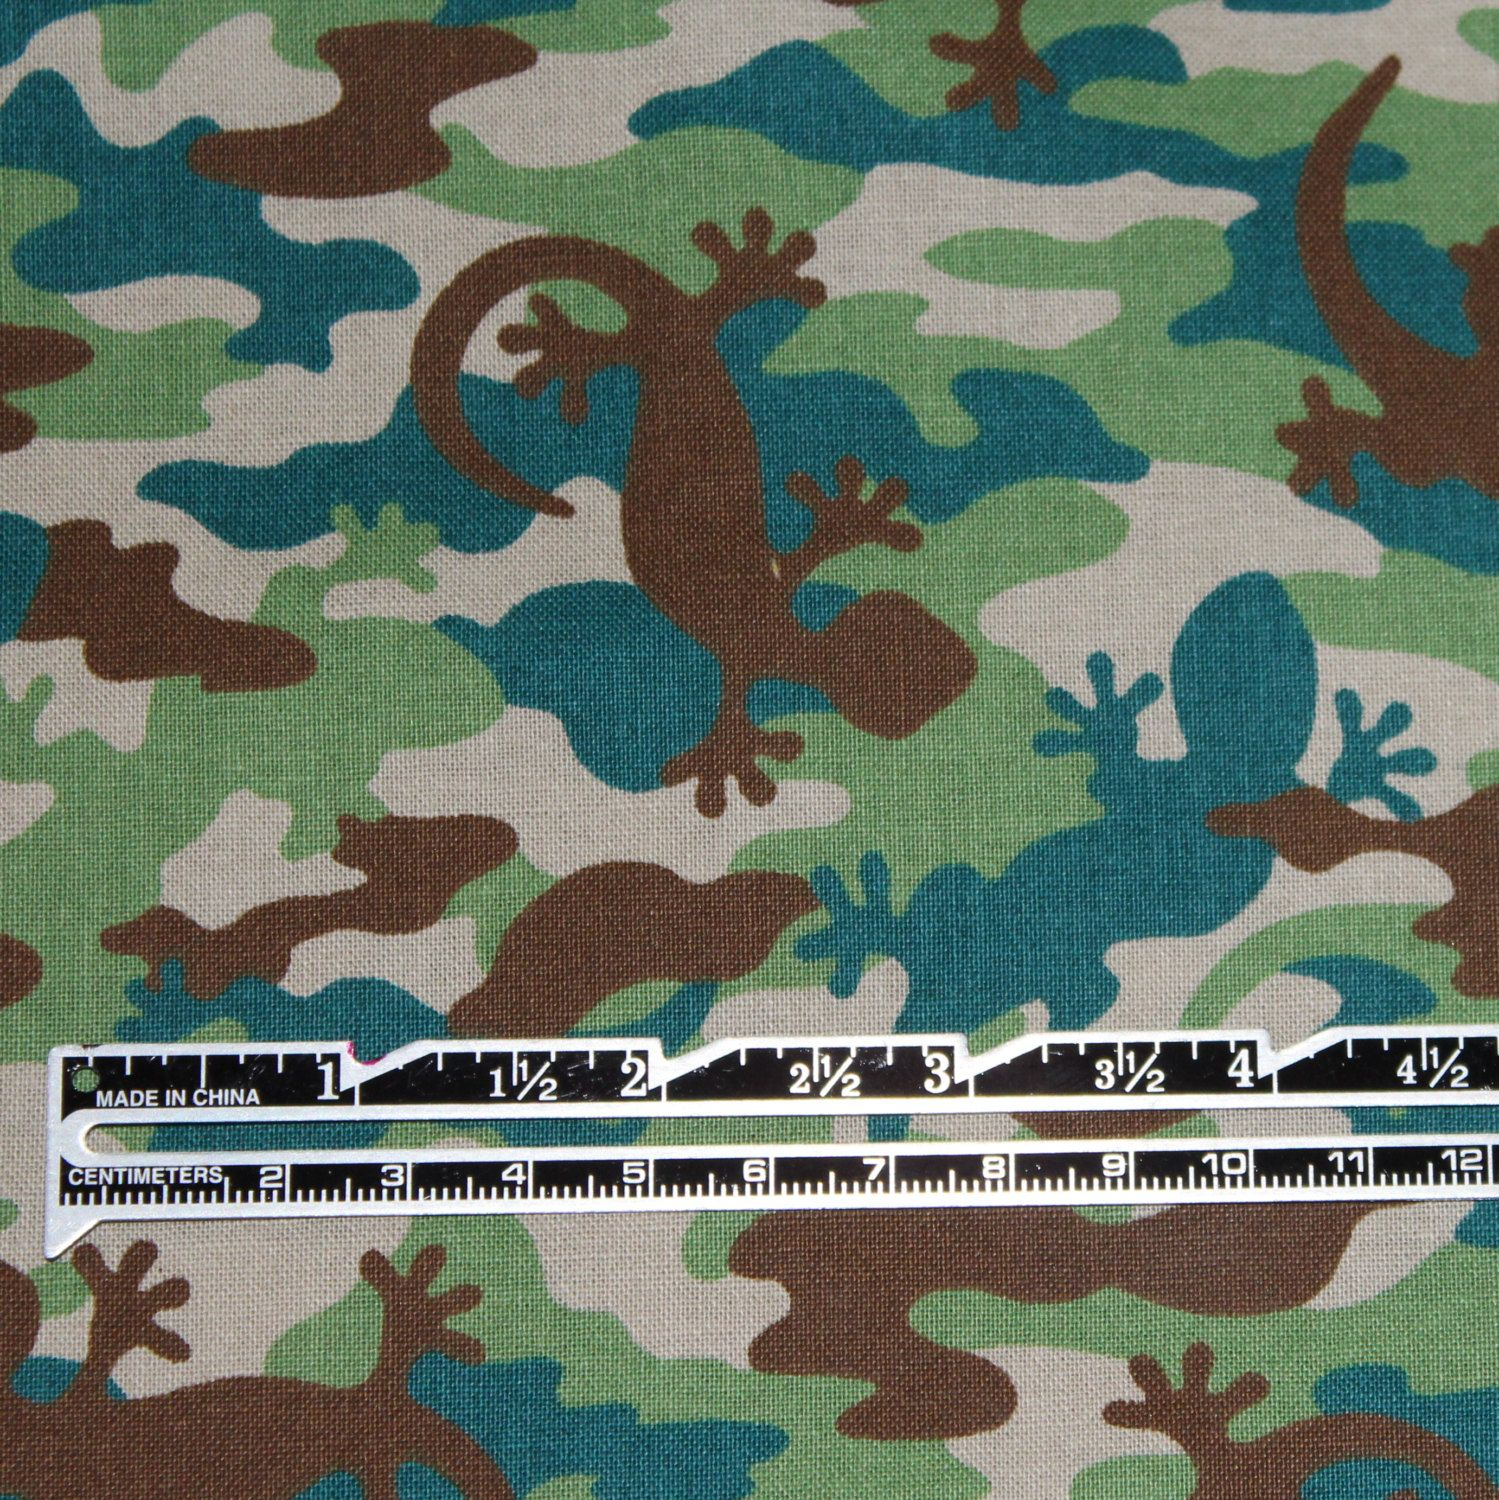 "Camo Lizard Fabric for JoAnn Fabrics END OF BOLT 31.5"" x 44"" 100% Cotton Apparel Camo Tossed Lizards Boys Fabric by JacobandChloesLLC on Etsy"